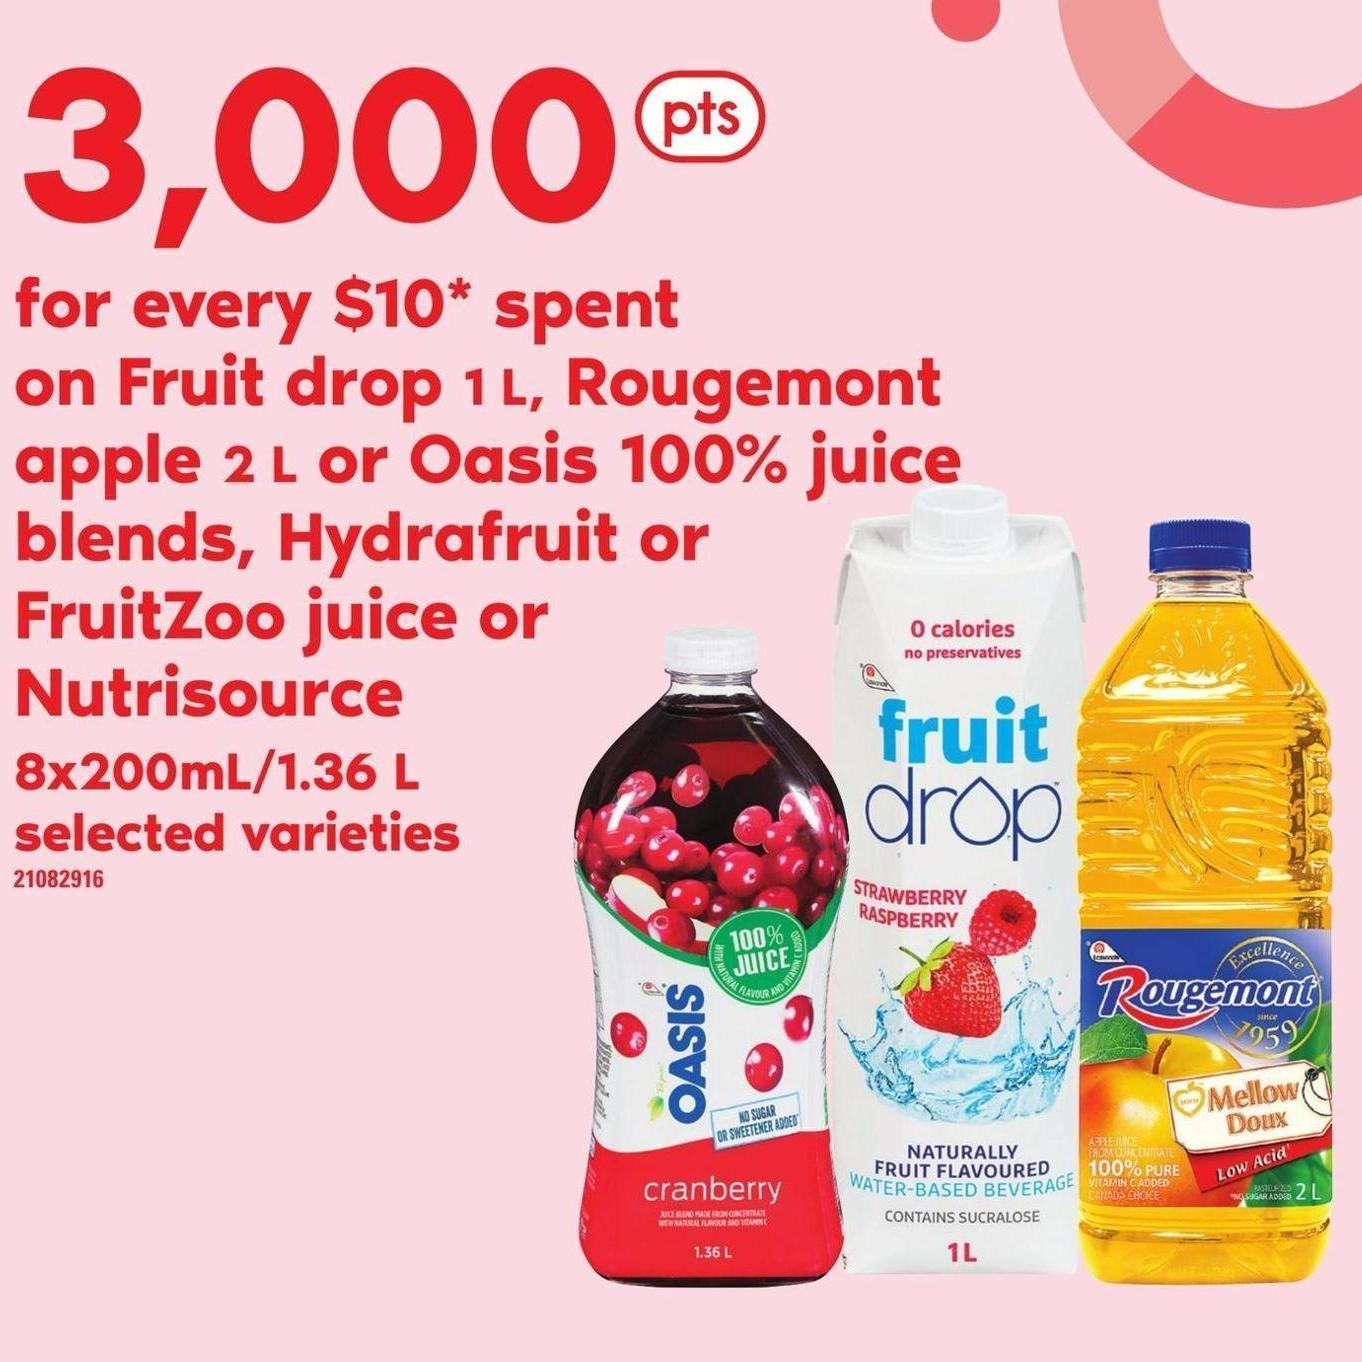 Fruit Drop 1 L - Rougemont Apple 2 L Or Oasis 100% Juice Blends - Hydrafruit Or Fruitzoo Juice Or Nutrisource - 8x200ml/1.36 L